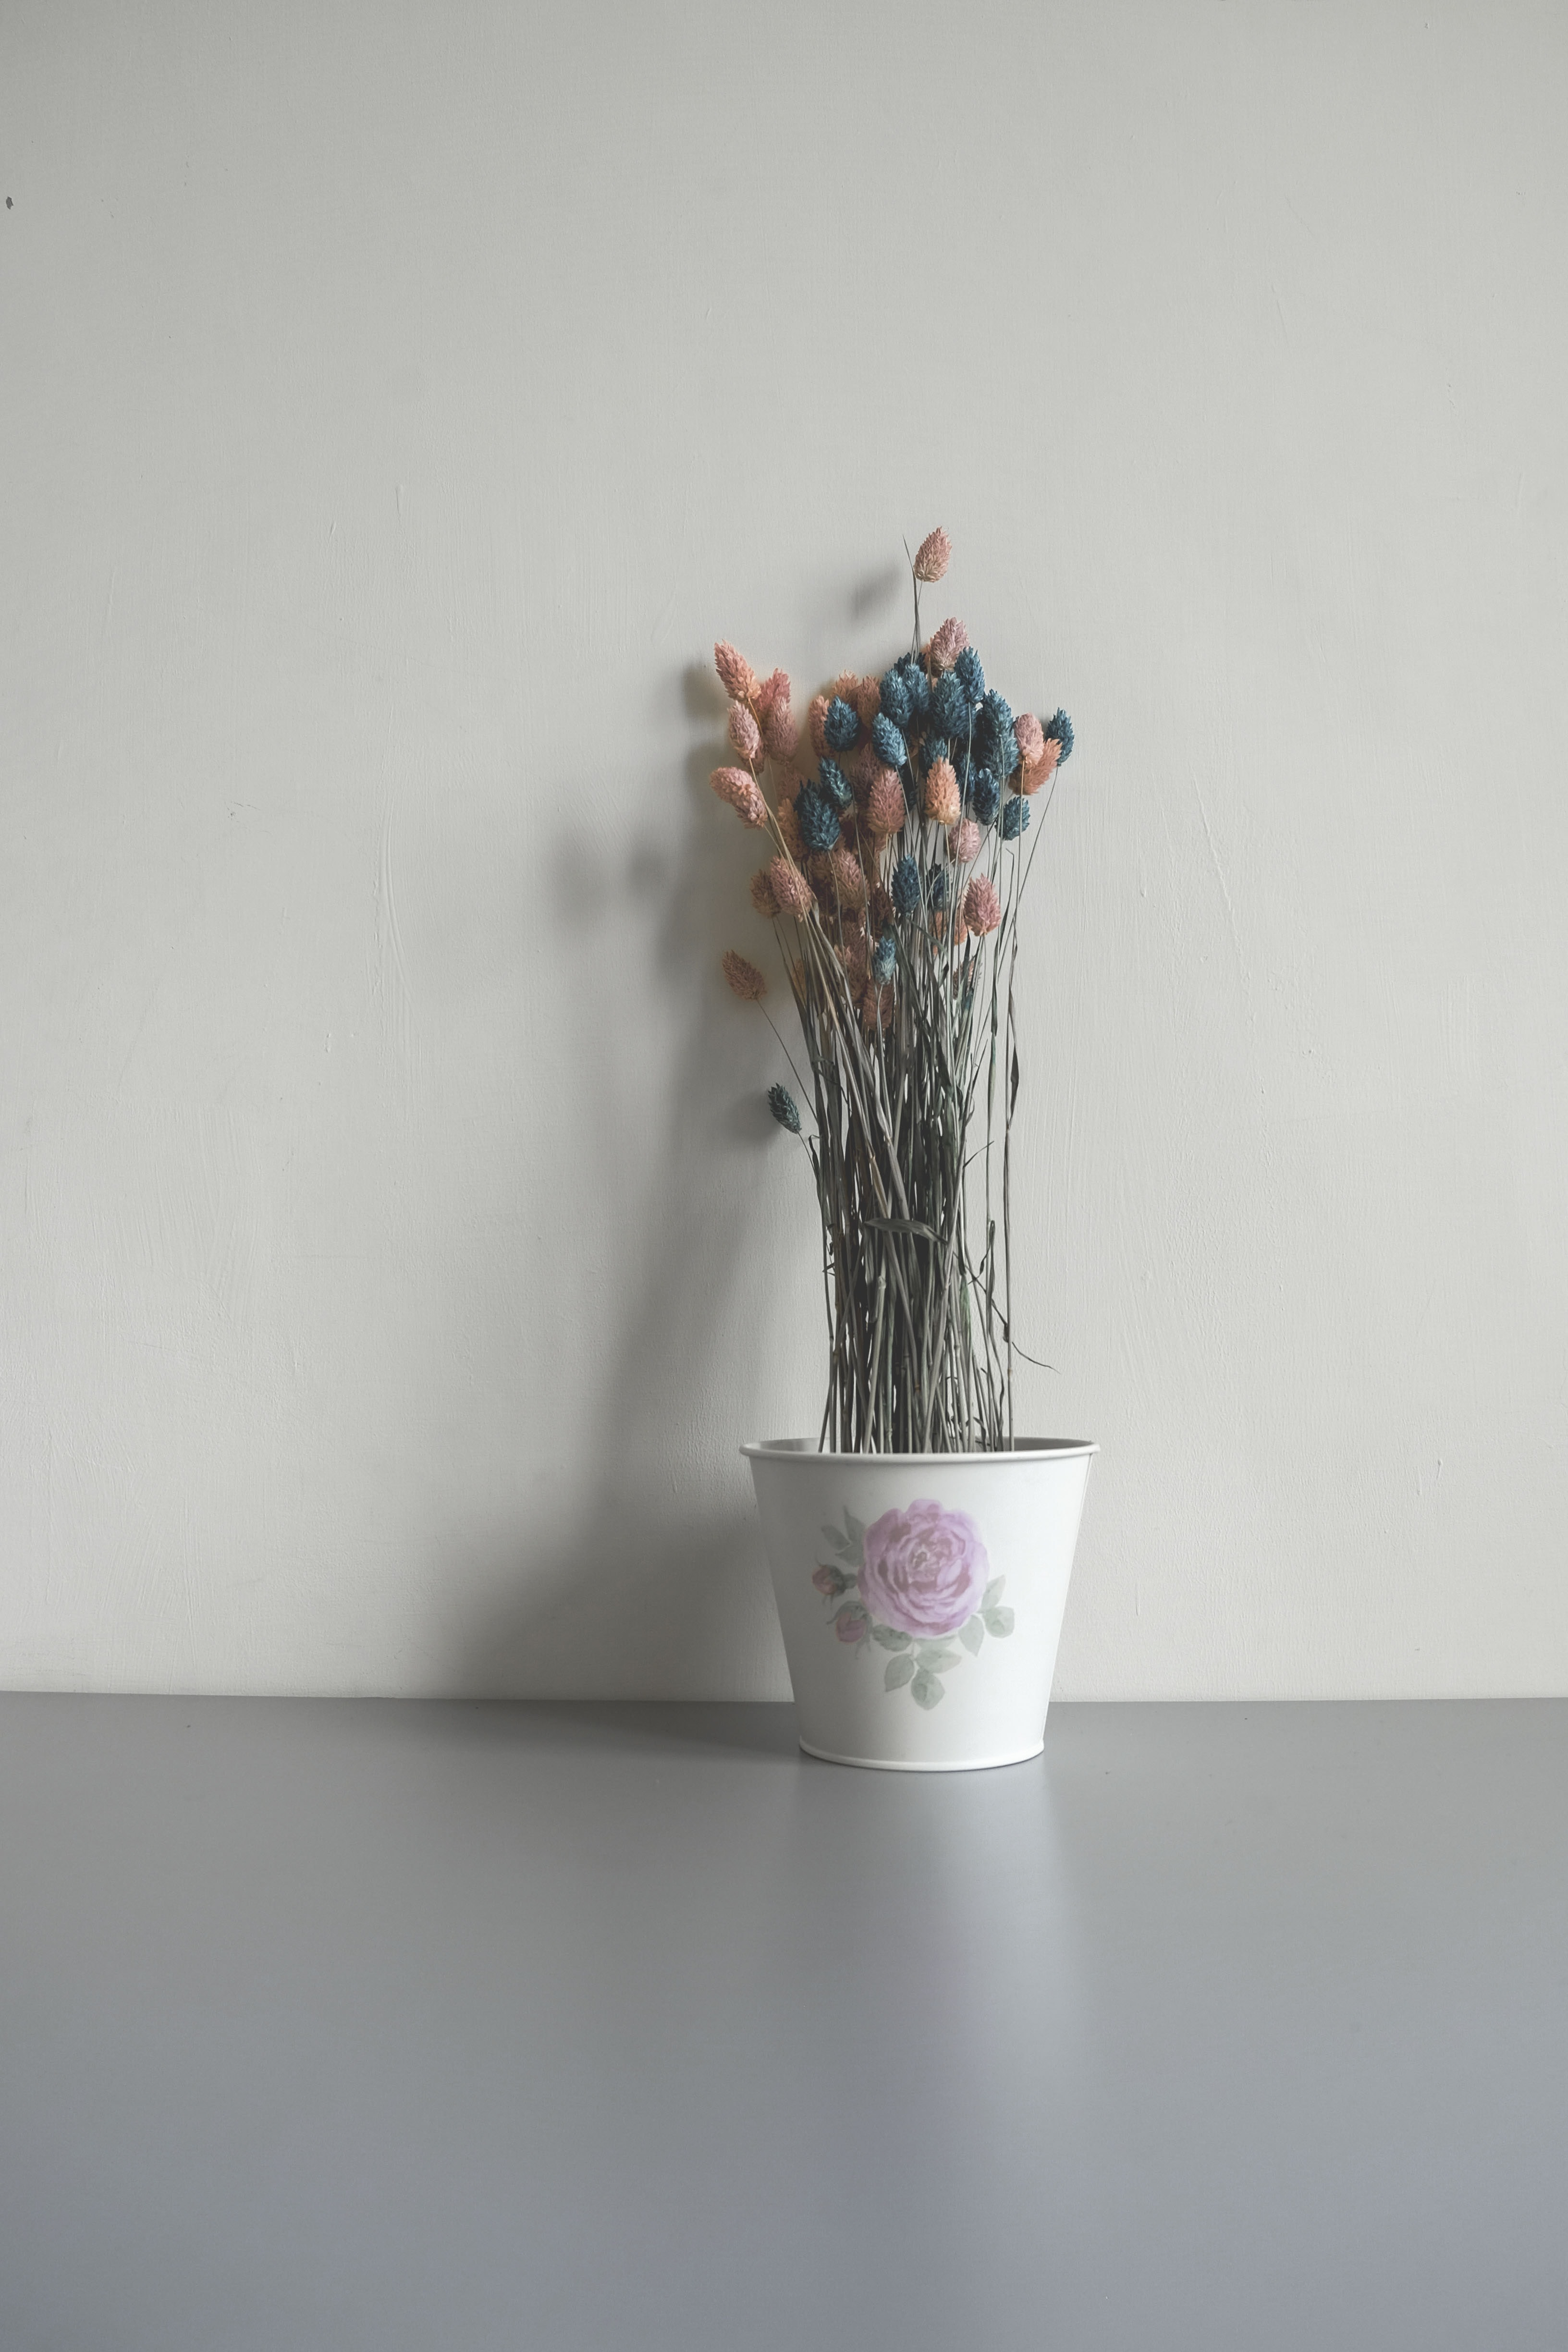 white potted pink and blue artificial flowers near wall